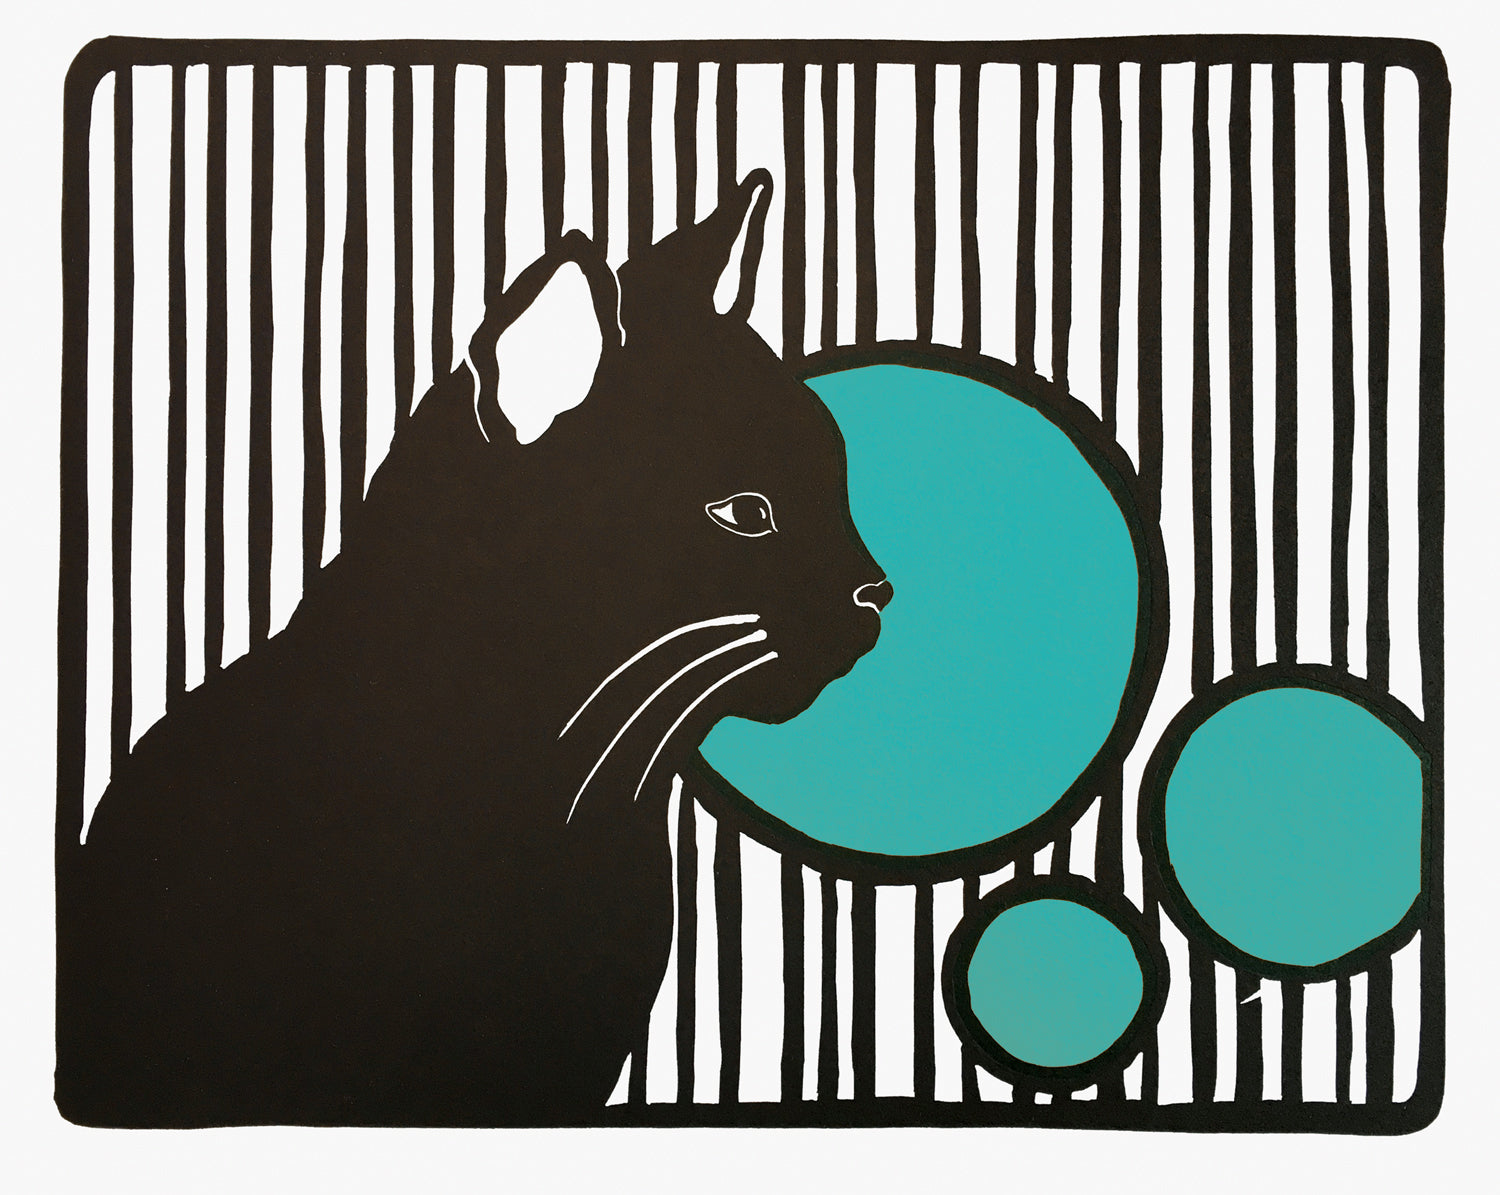 Cat with Stripes and Circles, Linocut Fine Art Print